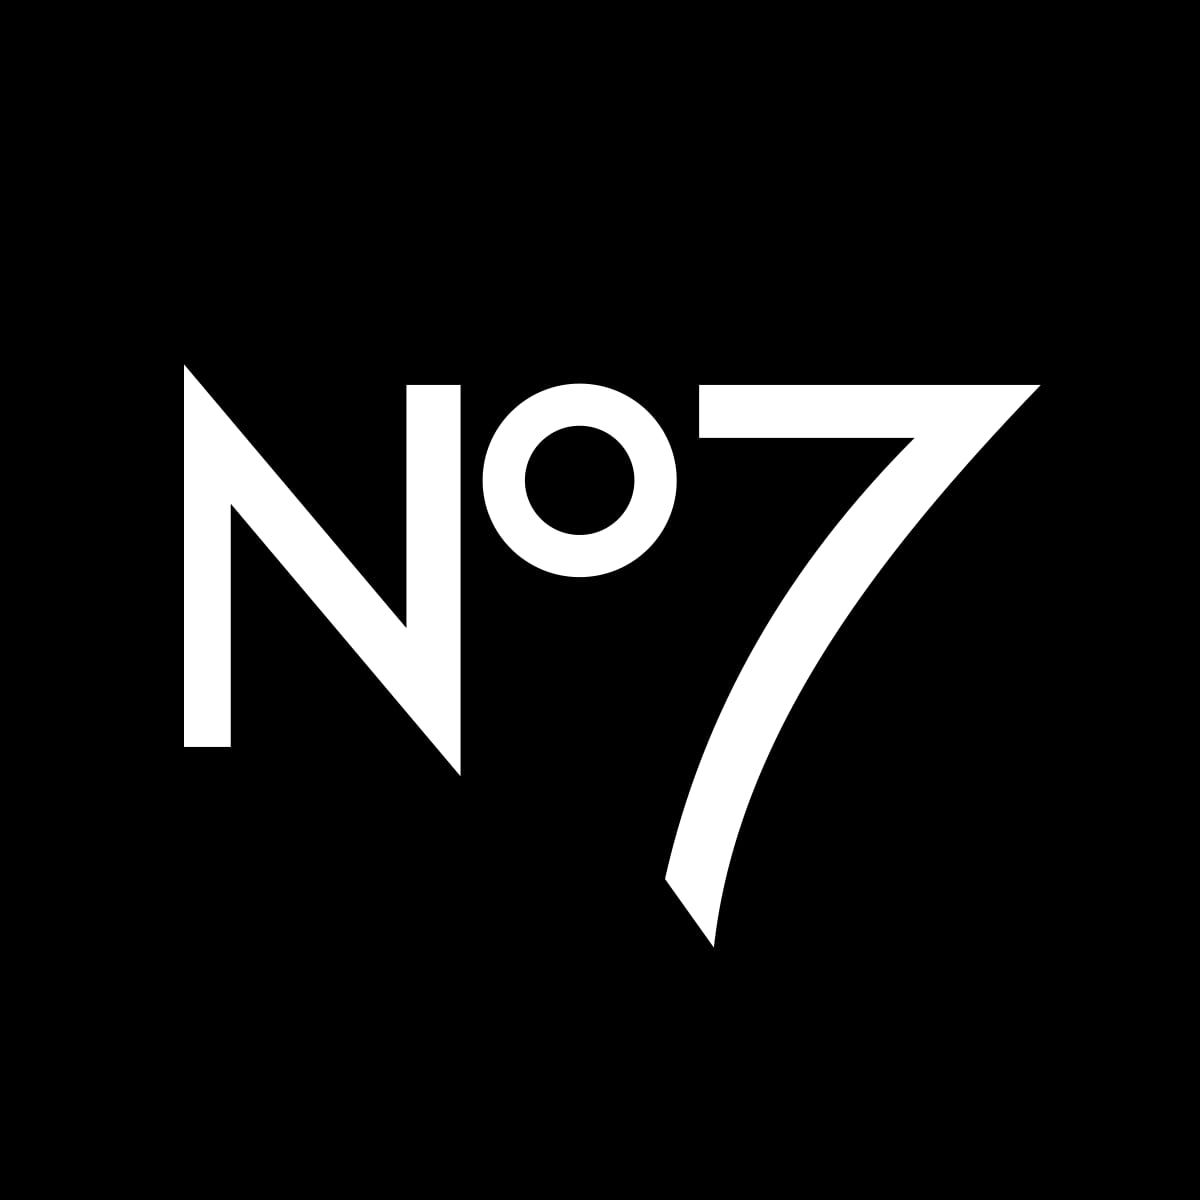 No7 Beauty: 20% Off Sitewide + Free Standard Shipping